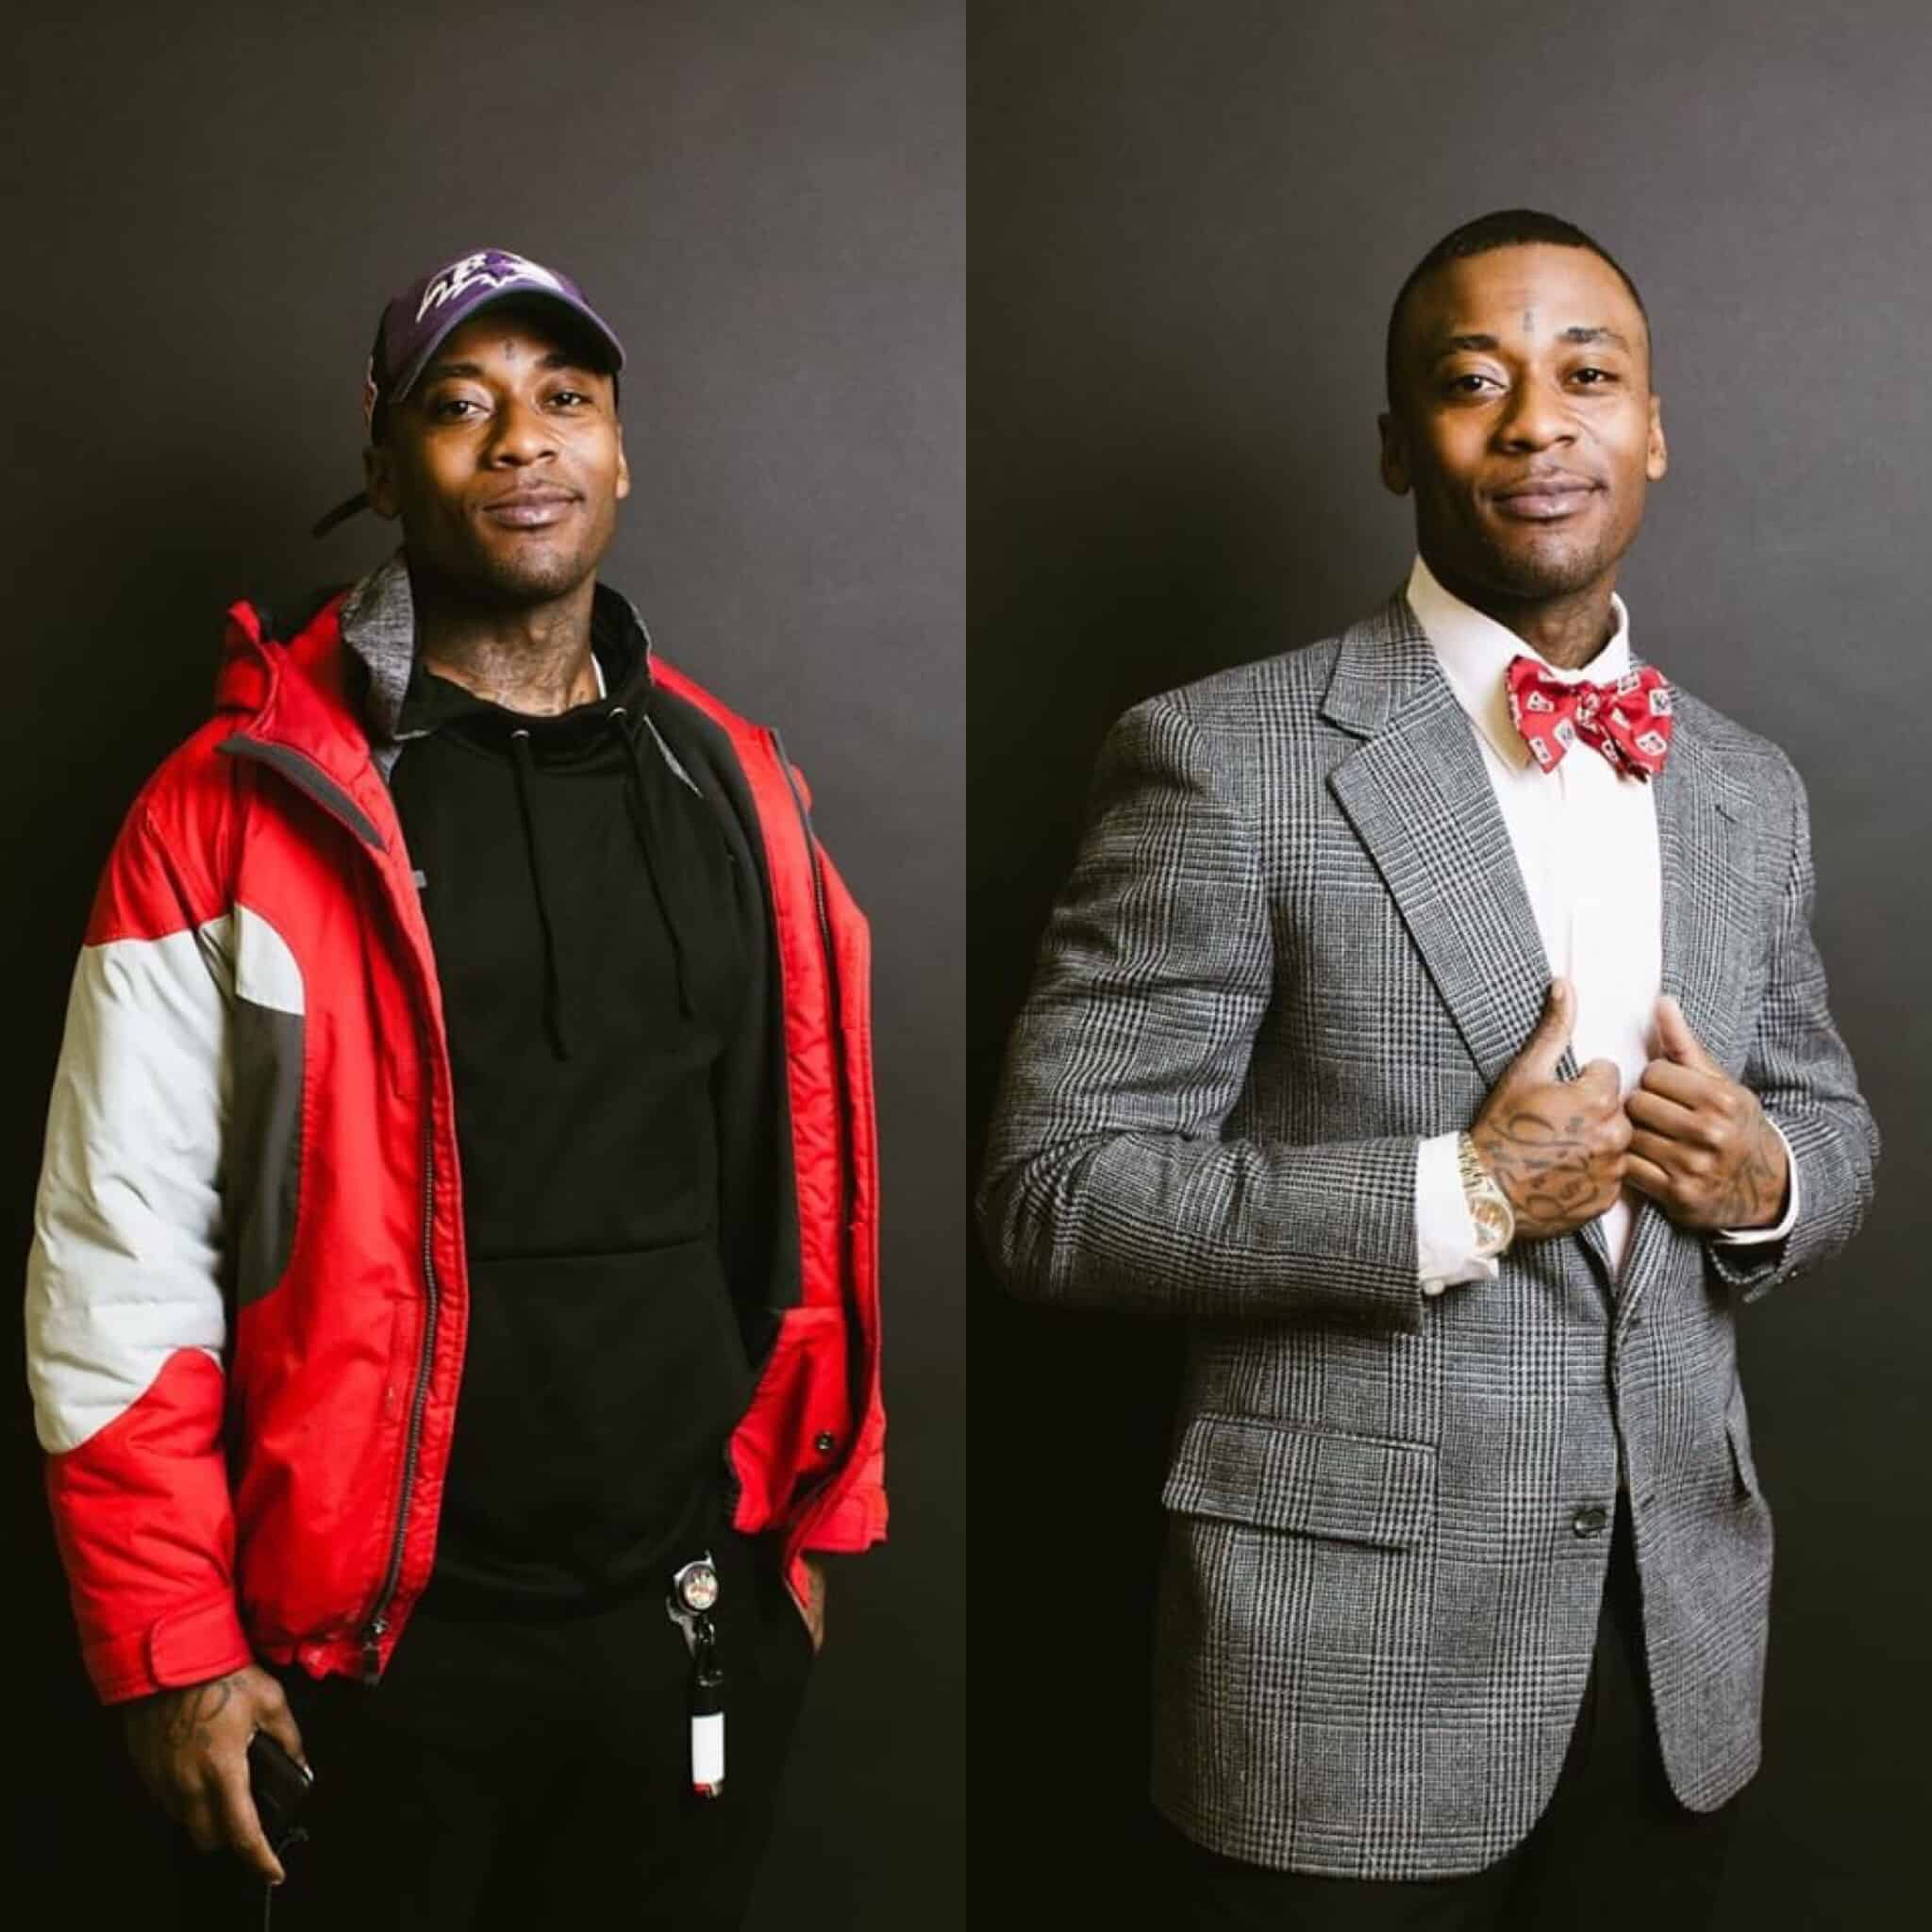 Father And Son Team Lend Men Recycled Suits Free Of Charge For A Second Chance To Enter The Workforce